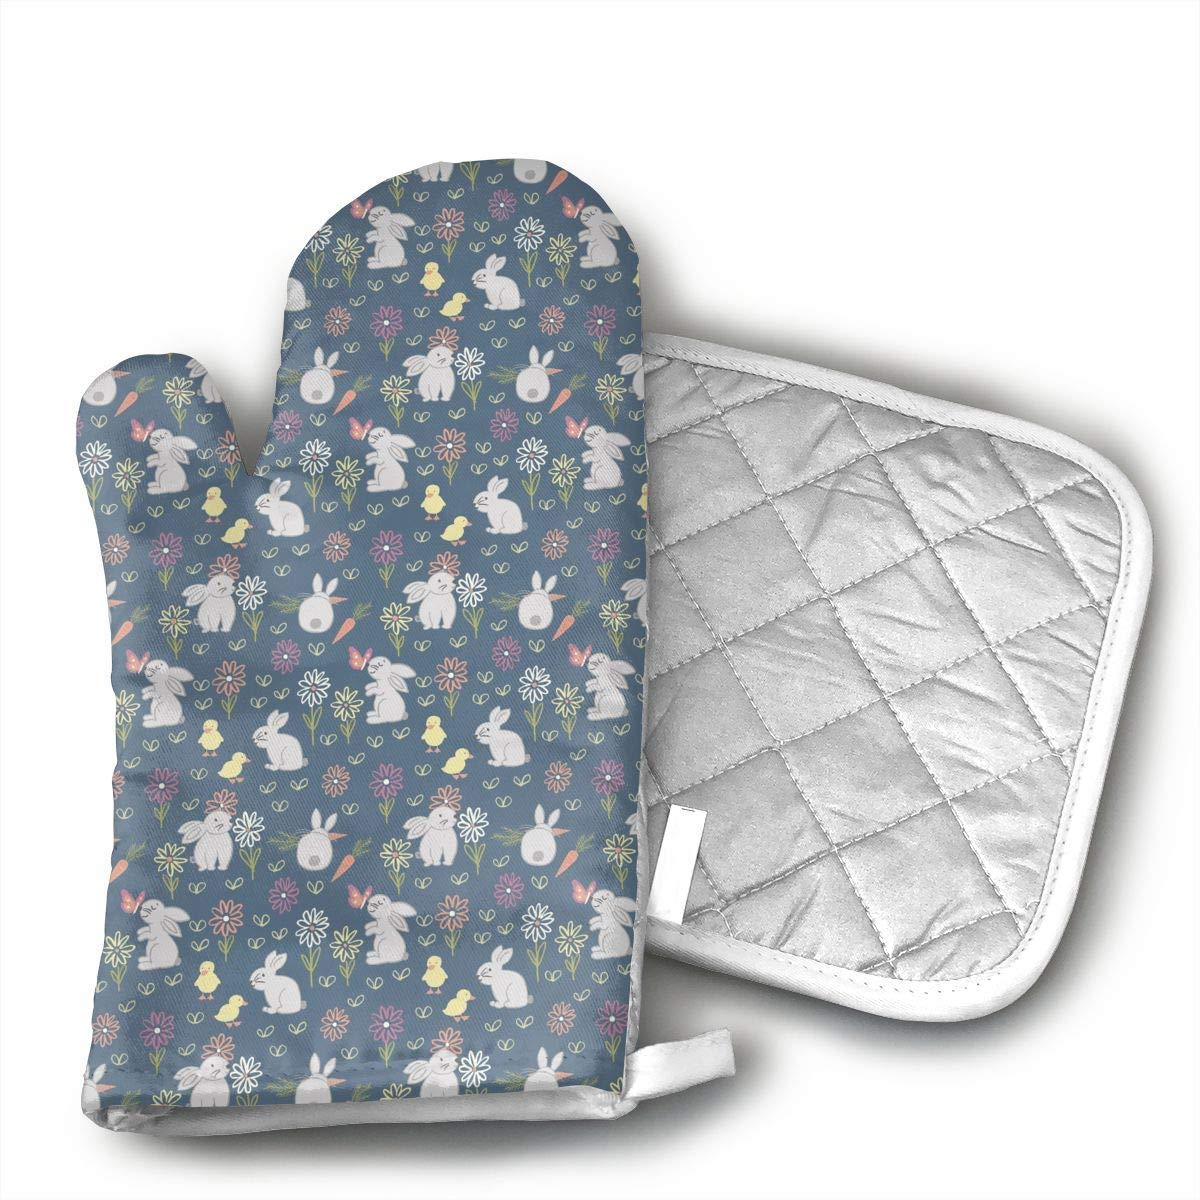 Bunny Garden Oven Mitts and Pot Holders Set with Polyester Cotton Non-Slip Grip Heat Resistant Oven Gloves for BBQ Cooking Baking Grilling